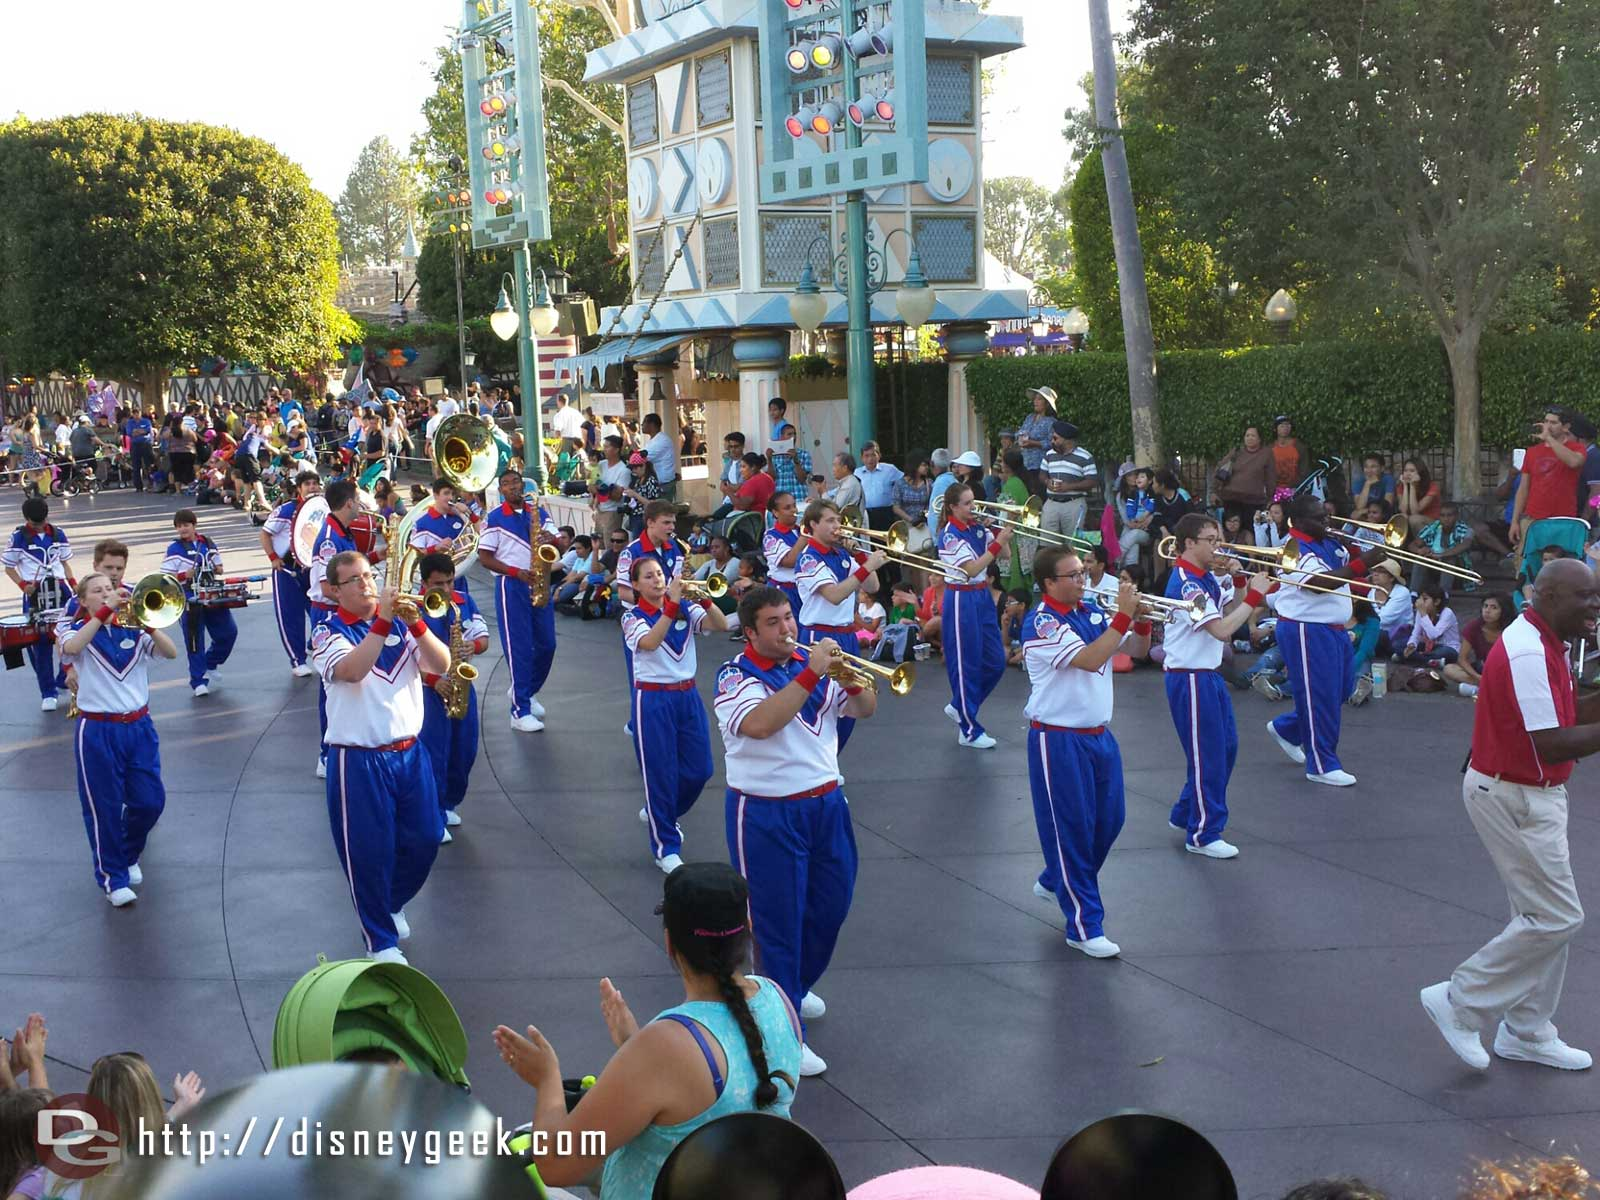 2014 #Disneyland All American College Band marching the parade route